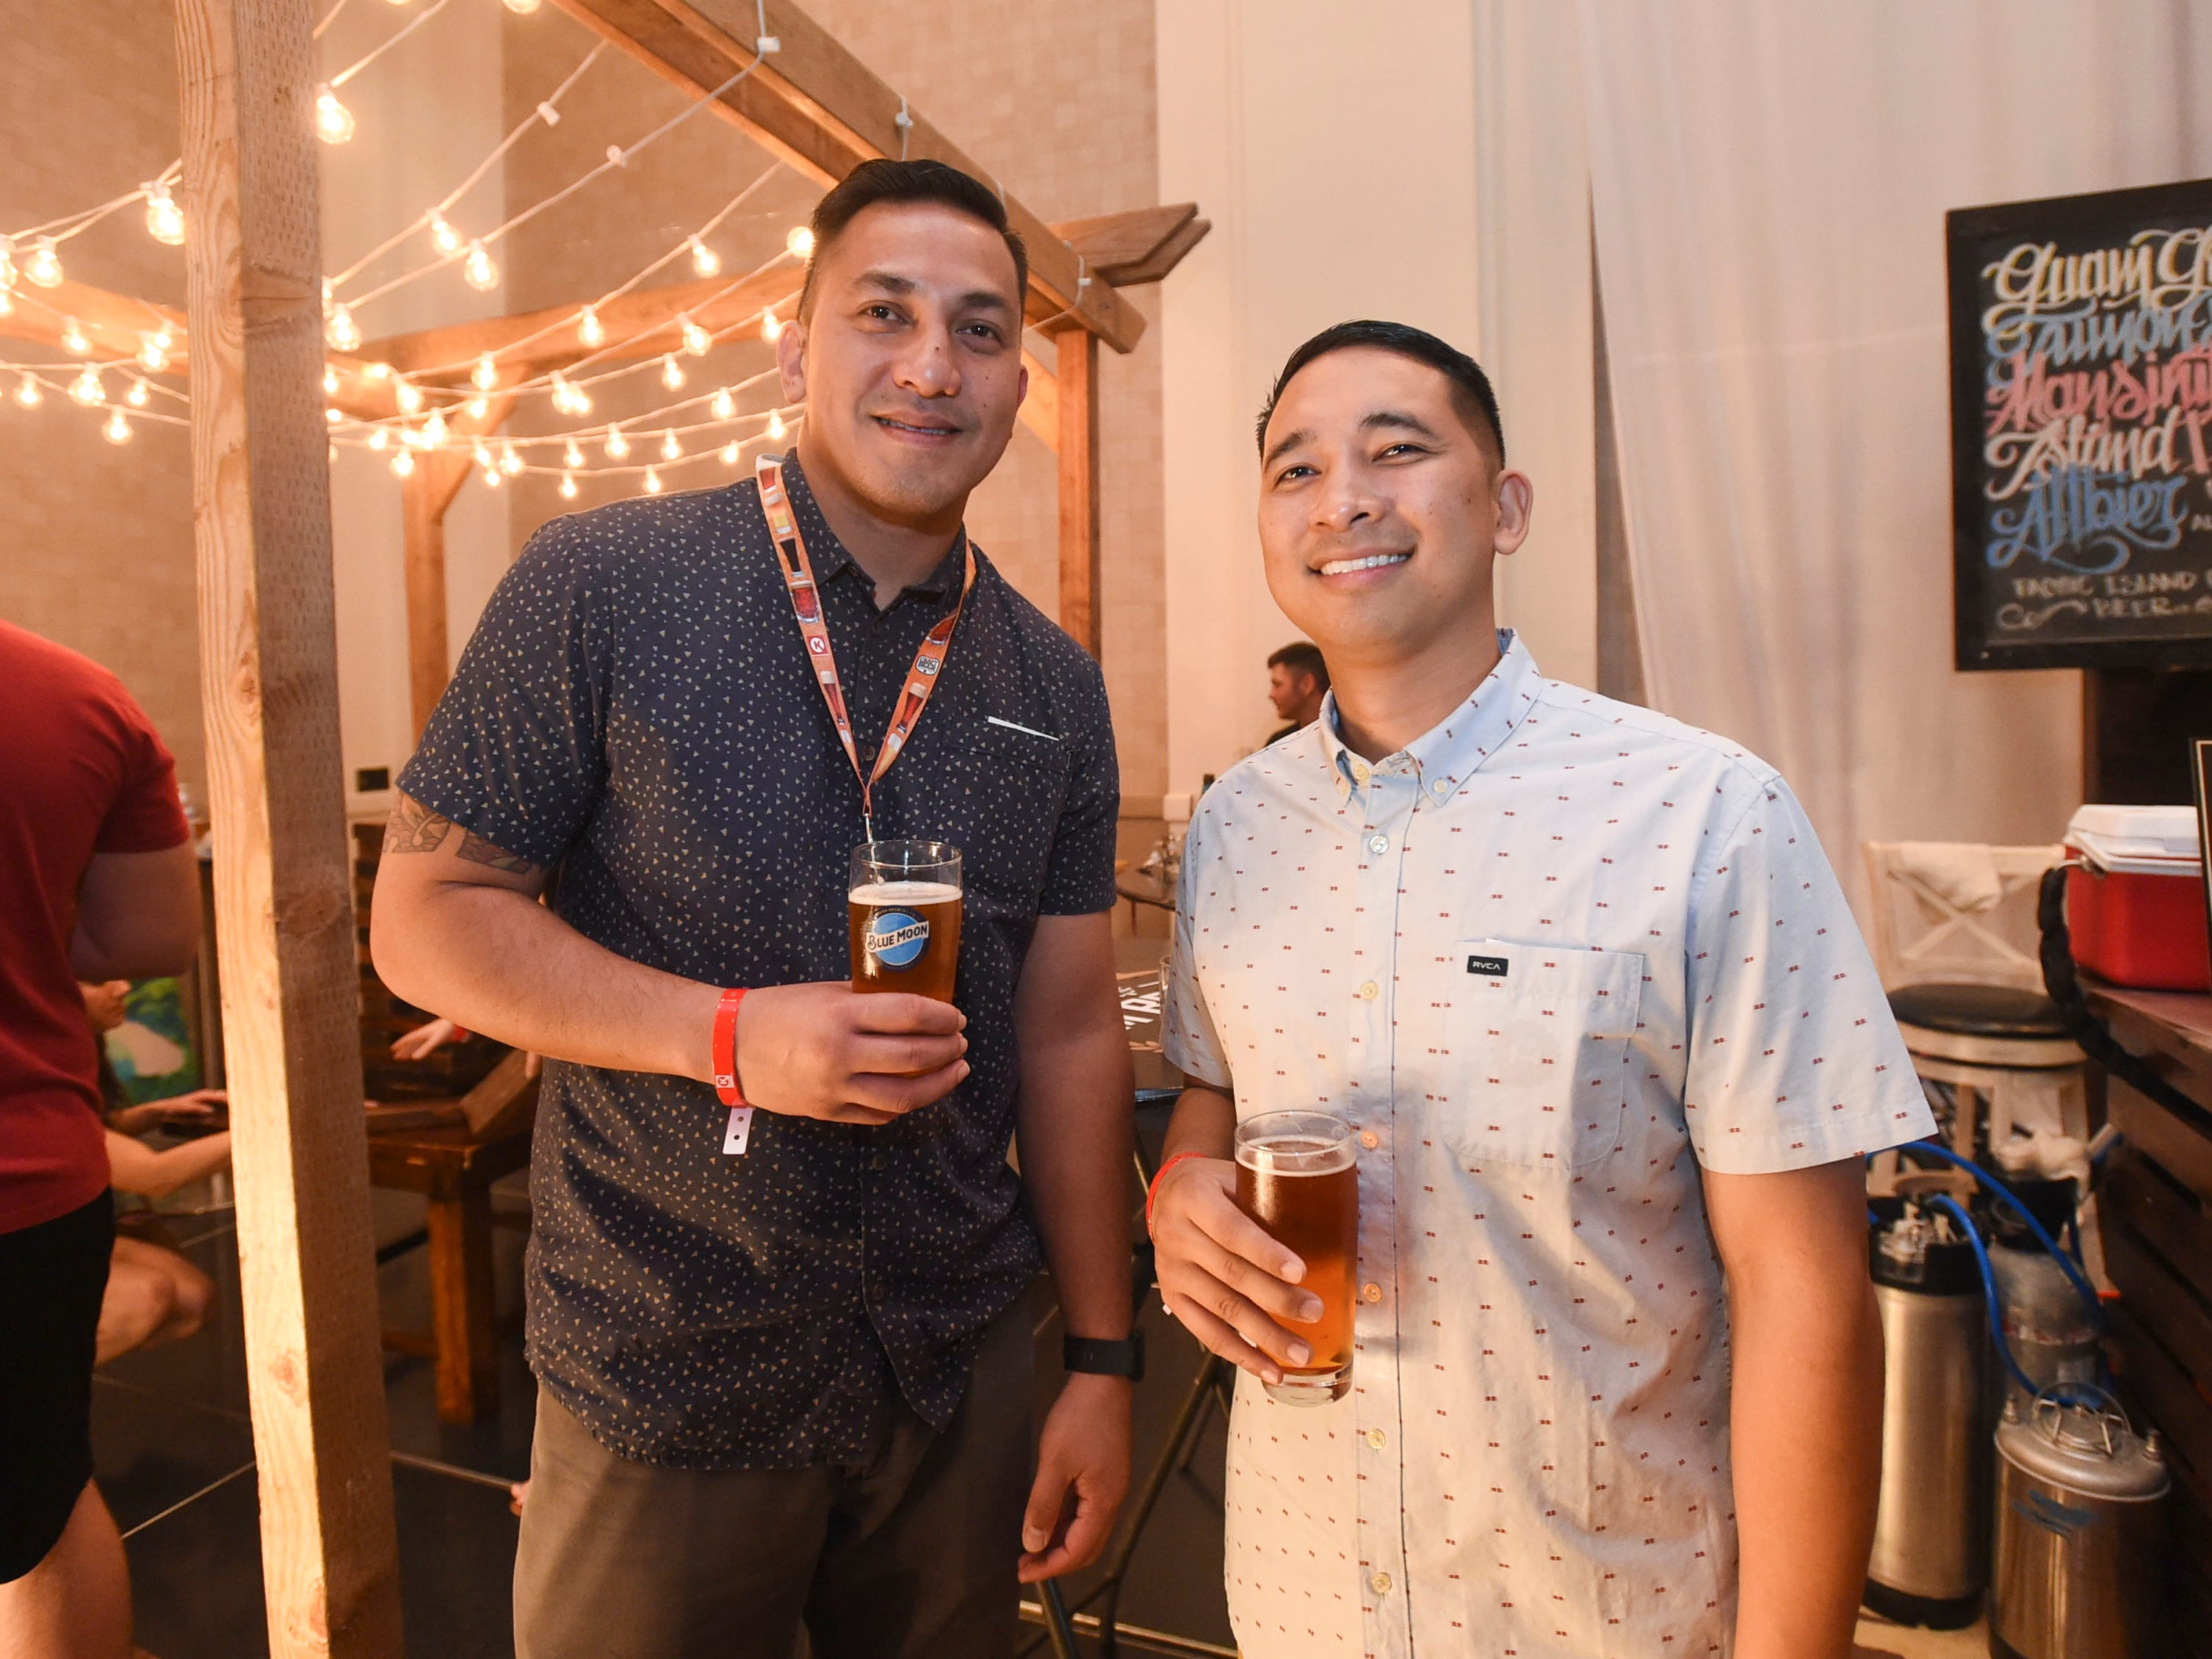 Best friends Ray Serineo, left, and Carlito Reyes, Jr. during the Circle K Craft Beer Festival at the Sheraton Laguna Guam Resort, Sept. 29, 2018.